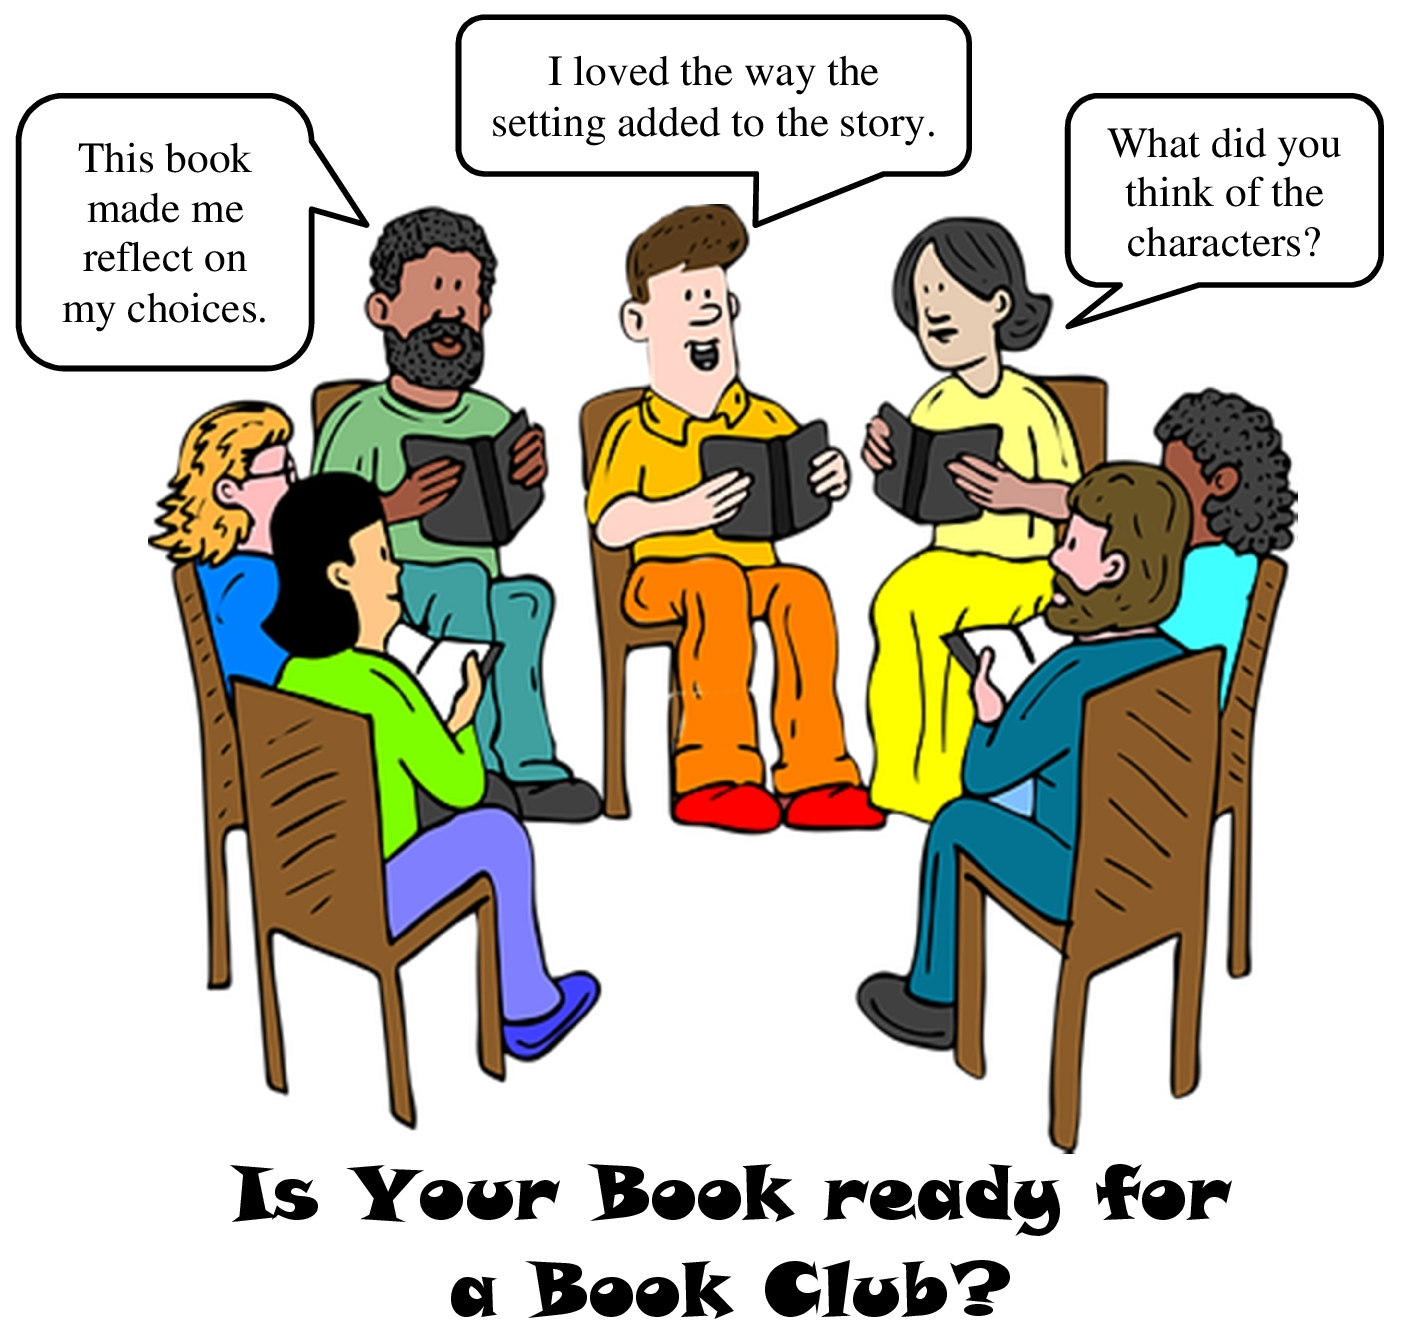 Are You Book Club Ready?